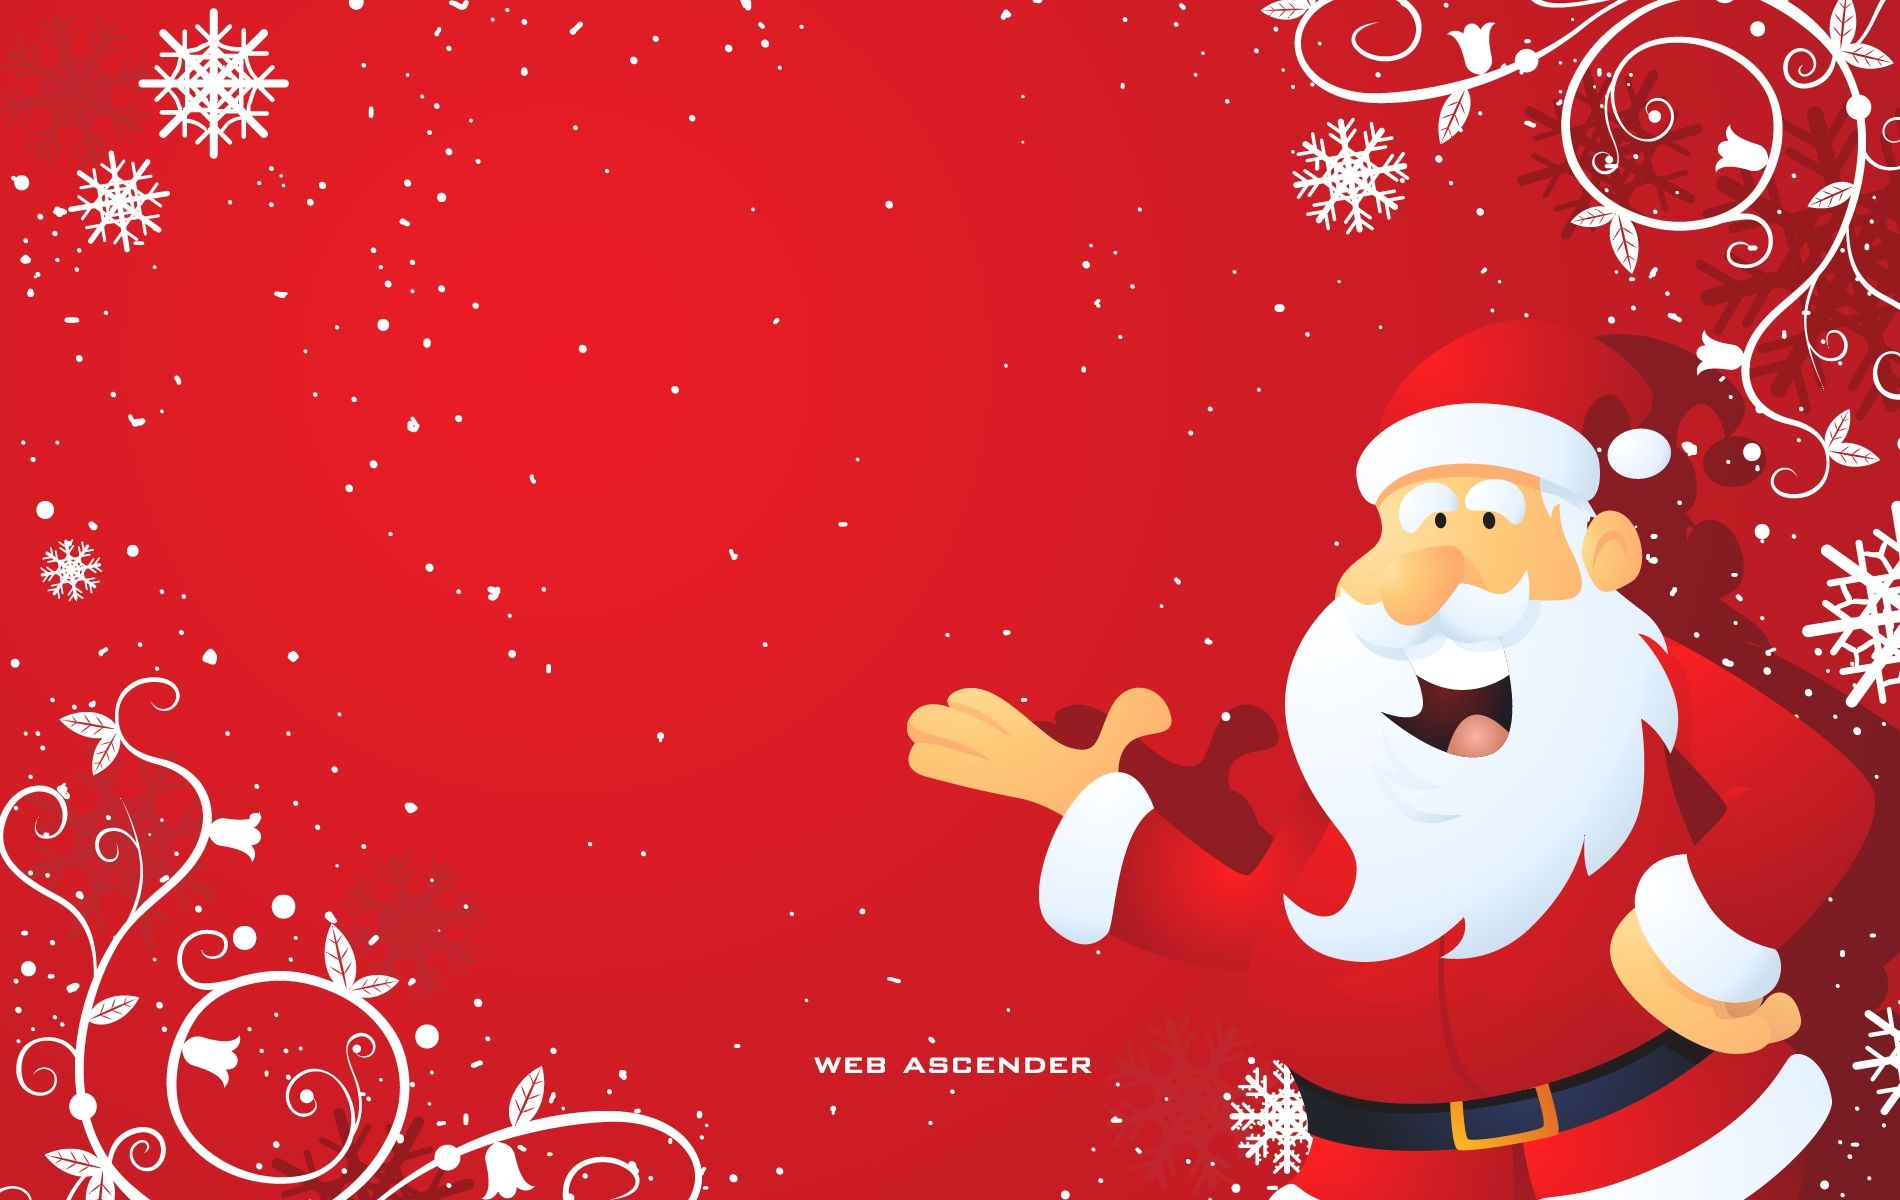 Santa Claus Wallpapers Set 03 Merry Christmas Images